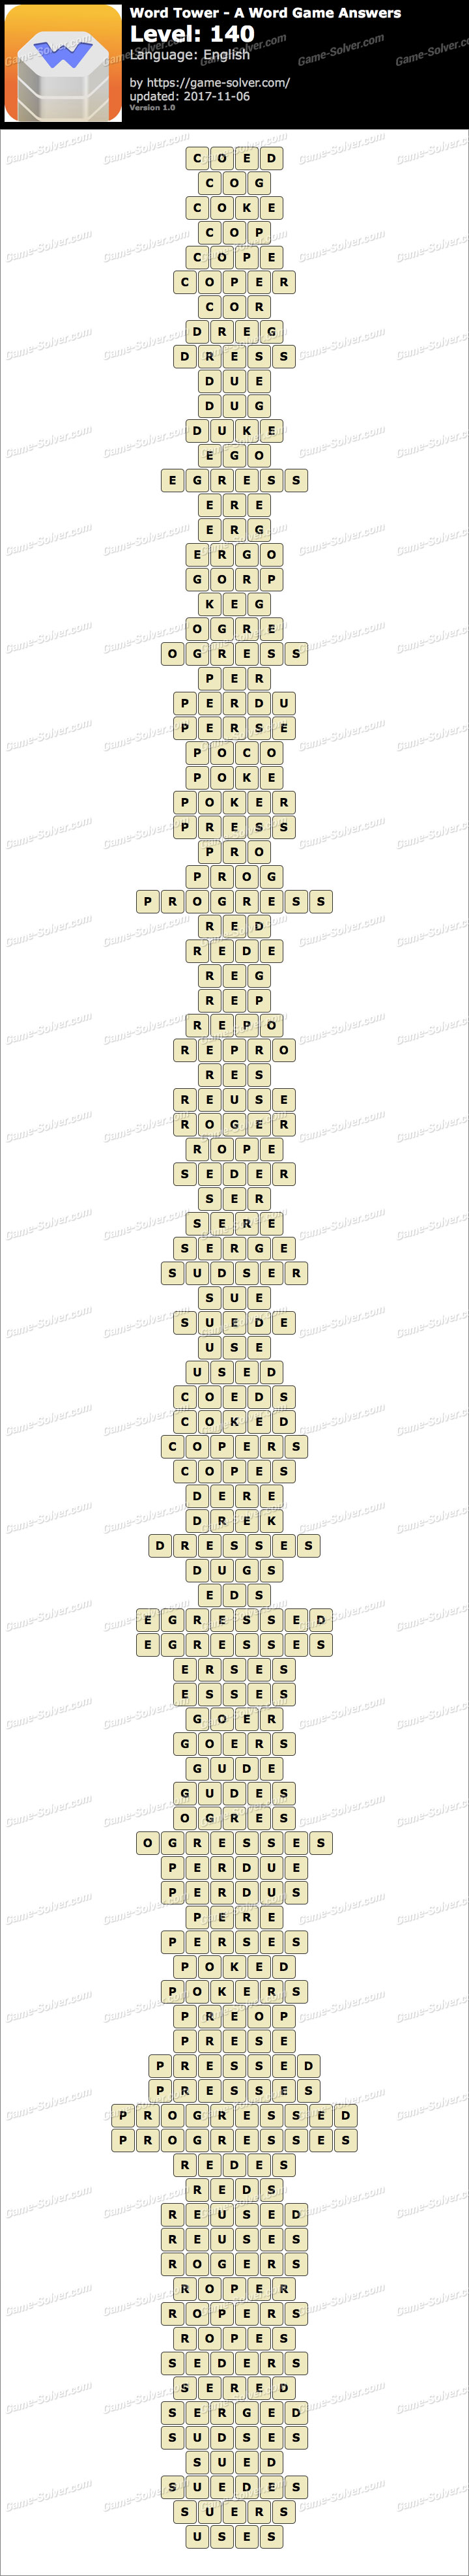 Word Tower Level 140 Answers